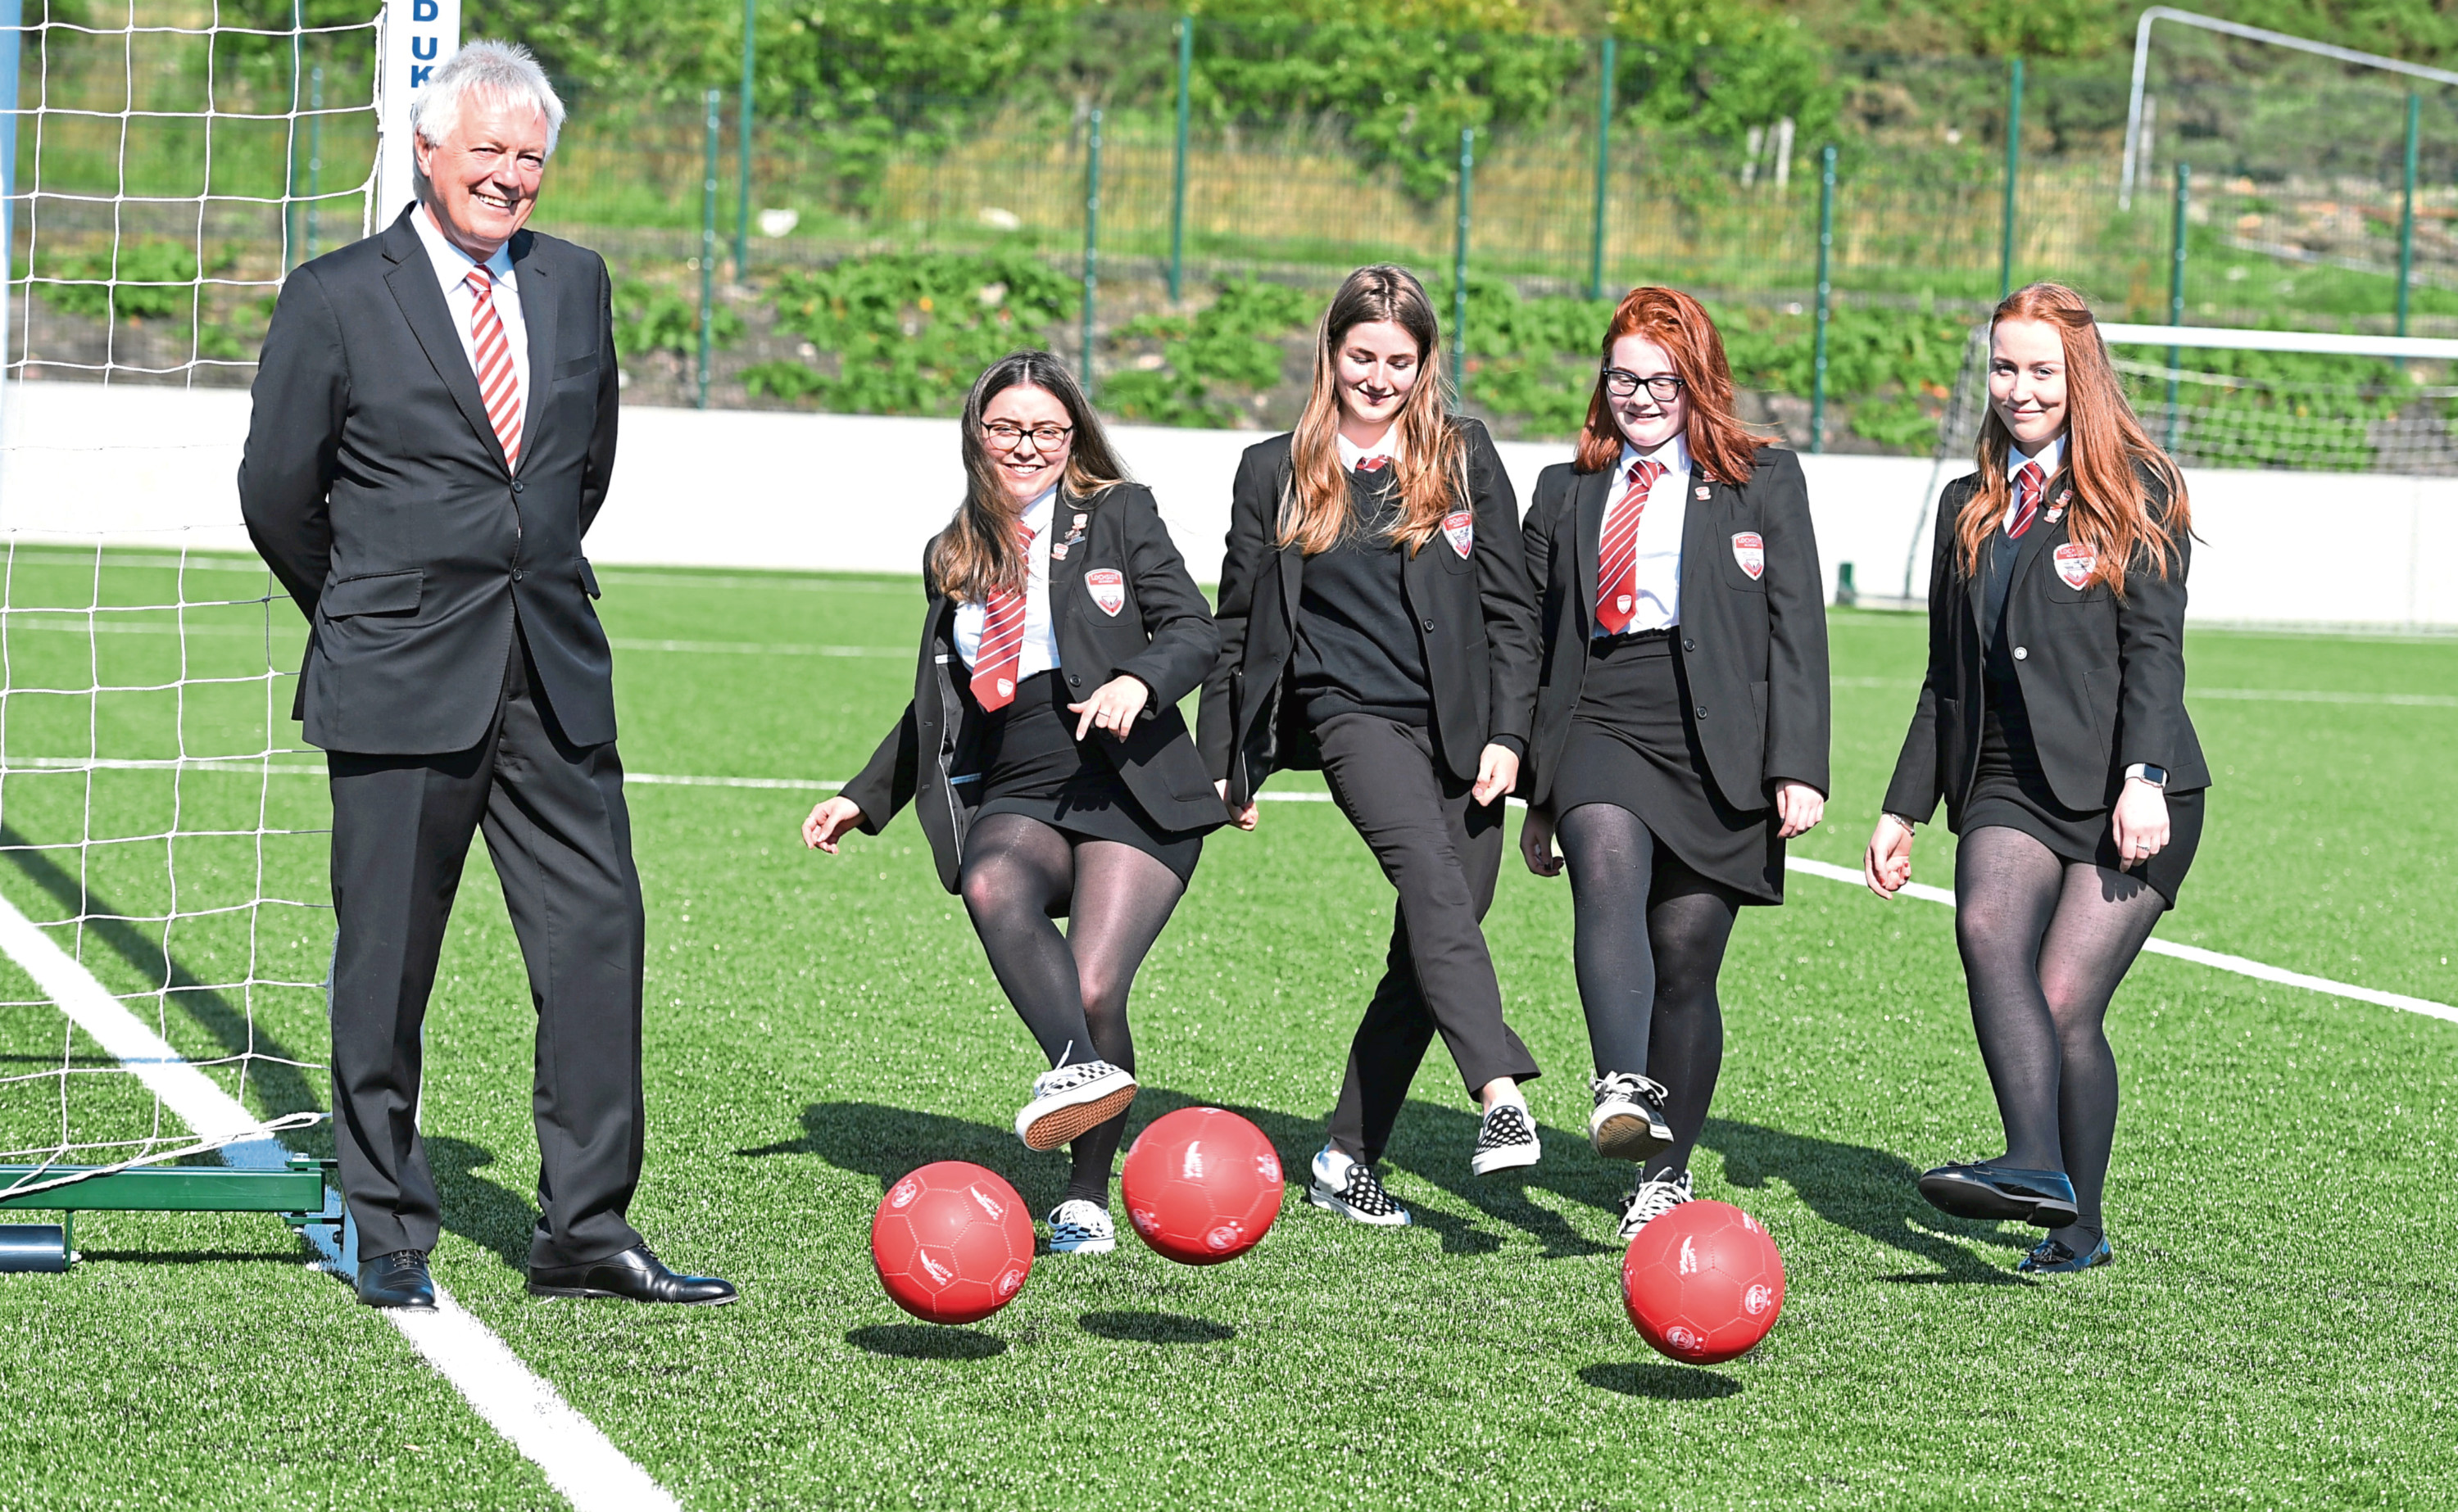 Duncan Skinner, chairman of Aberdeen Football Club Community Trust, with pupils from left, Rachel Milne, Laura Forsyth, Erin Christie and Abbey McCabe